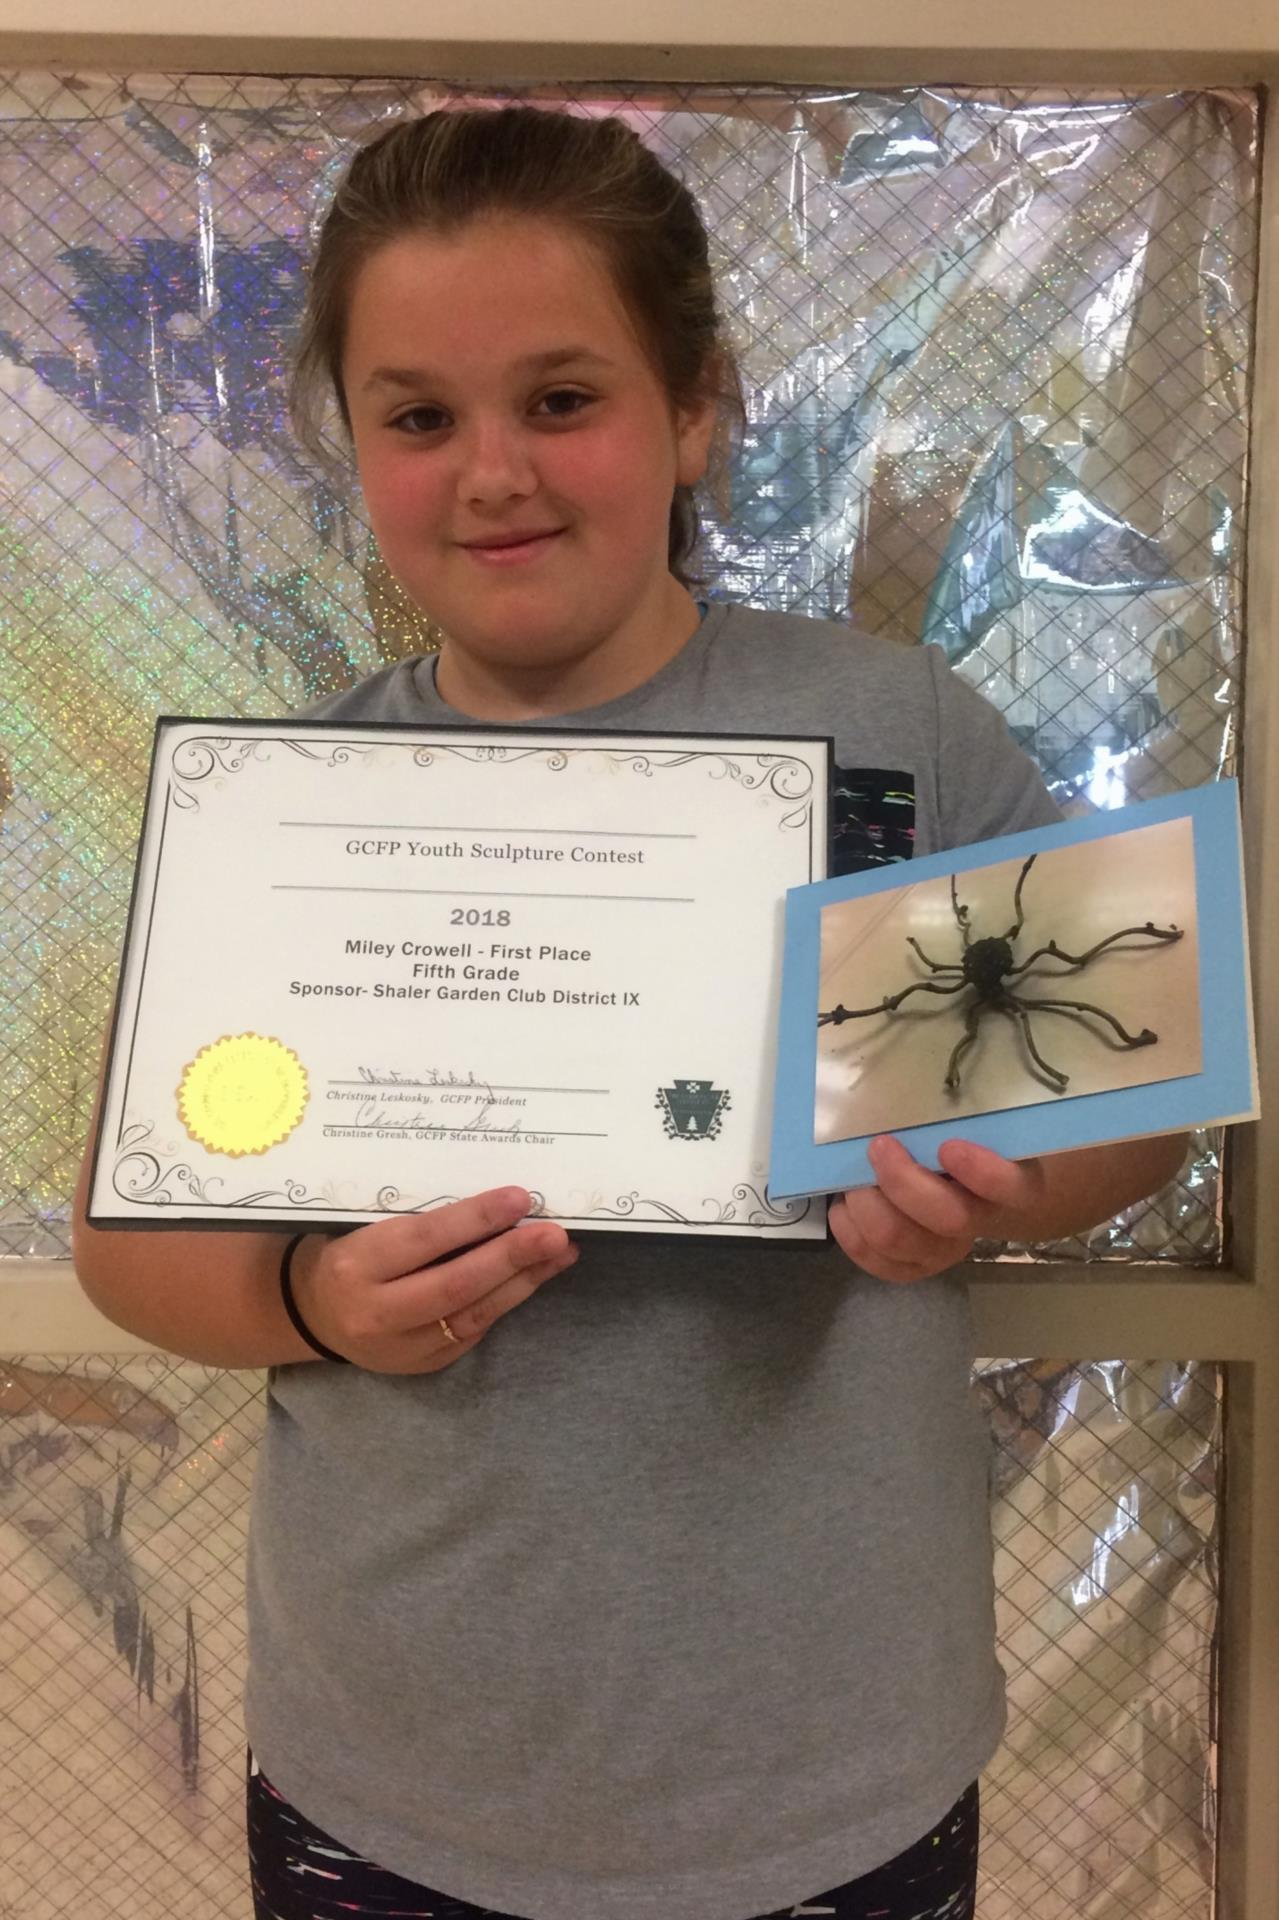 Miley Crowell holding certificate and photo